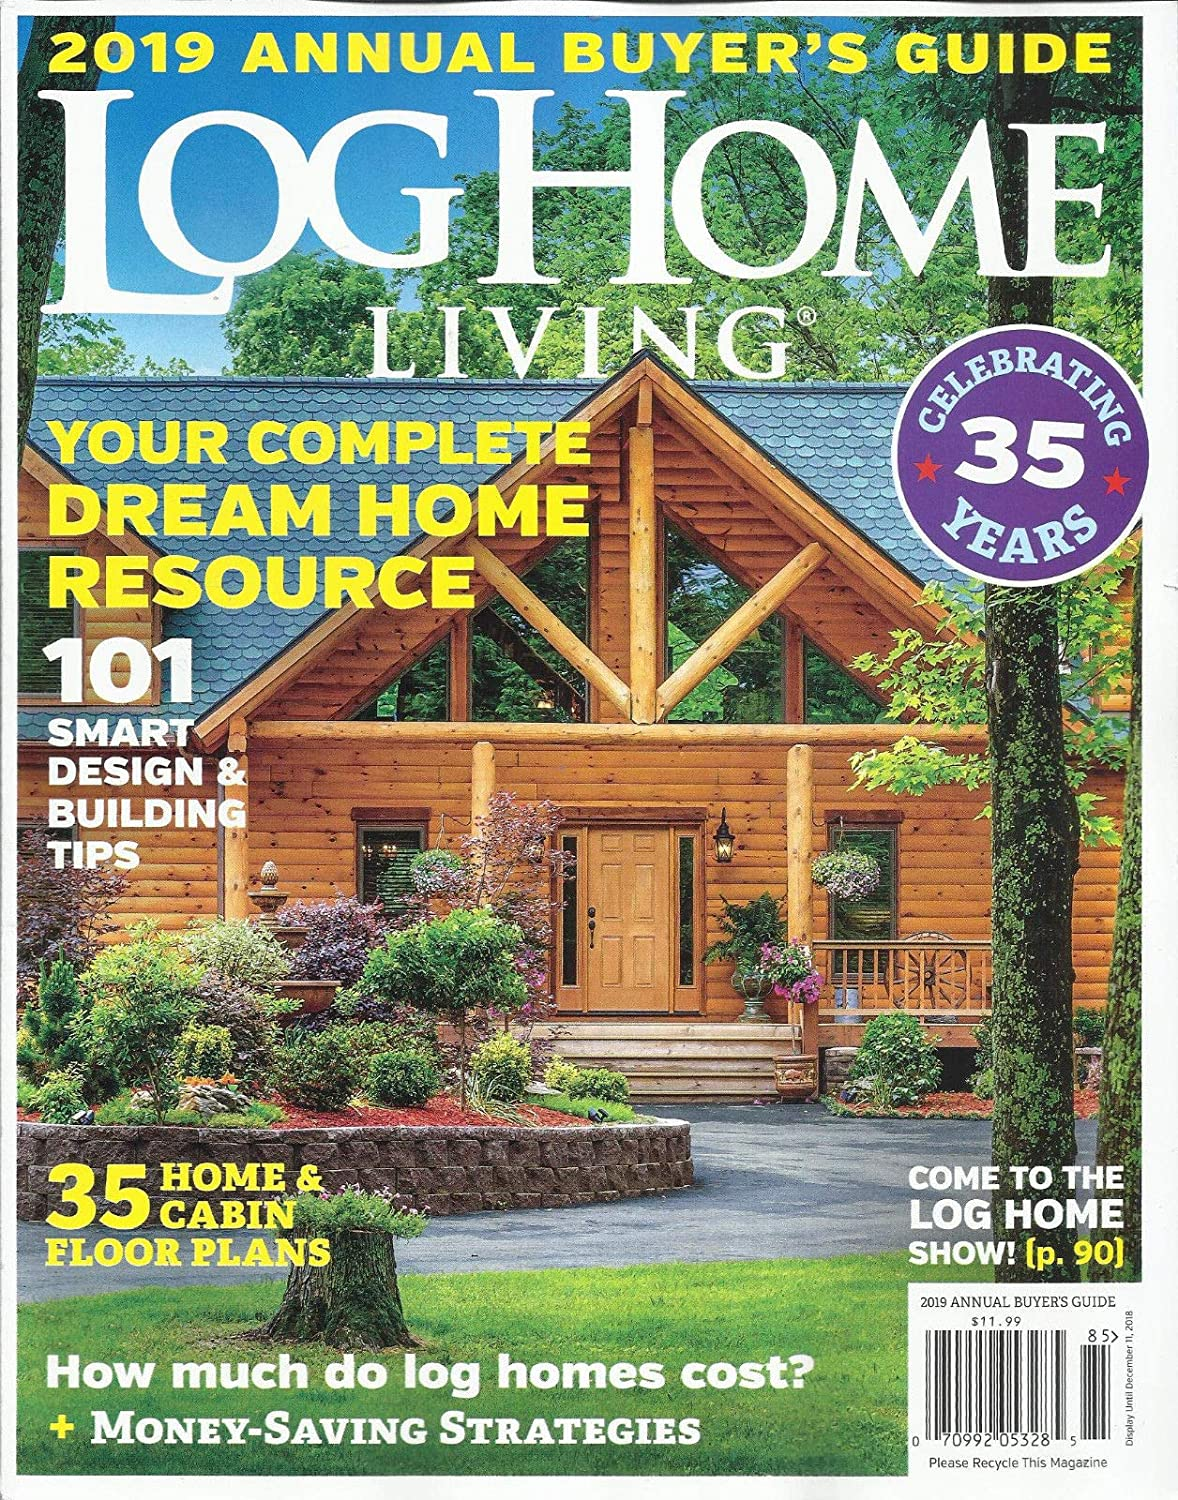 LOG HOME LIVING MAGAZINE, 2019 ANNUAL BUYER'S GUIDE, CELEBRATING 35 YEARS, 2018 2019 ANNUAL BUYER'S GUIDE s3457